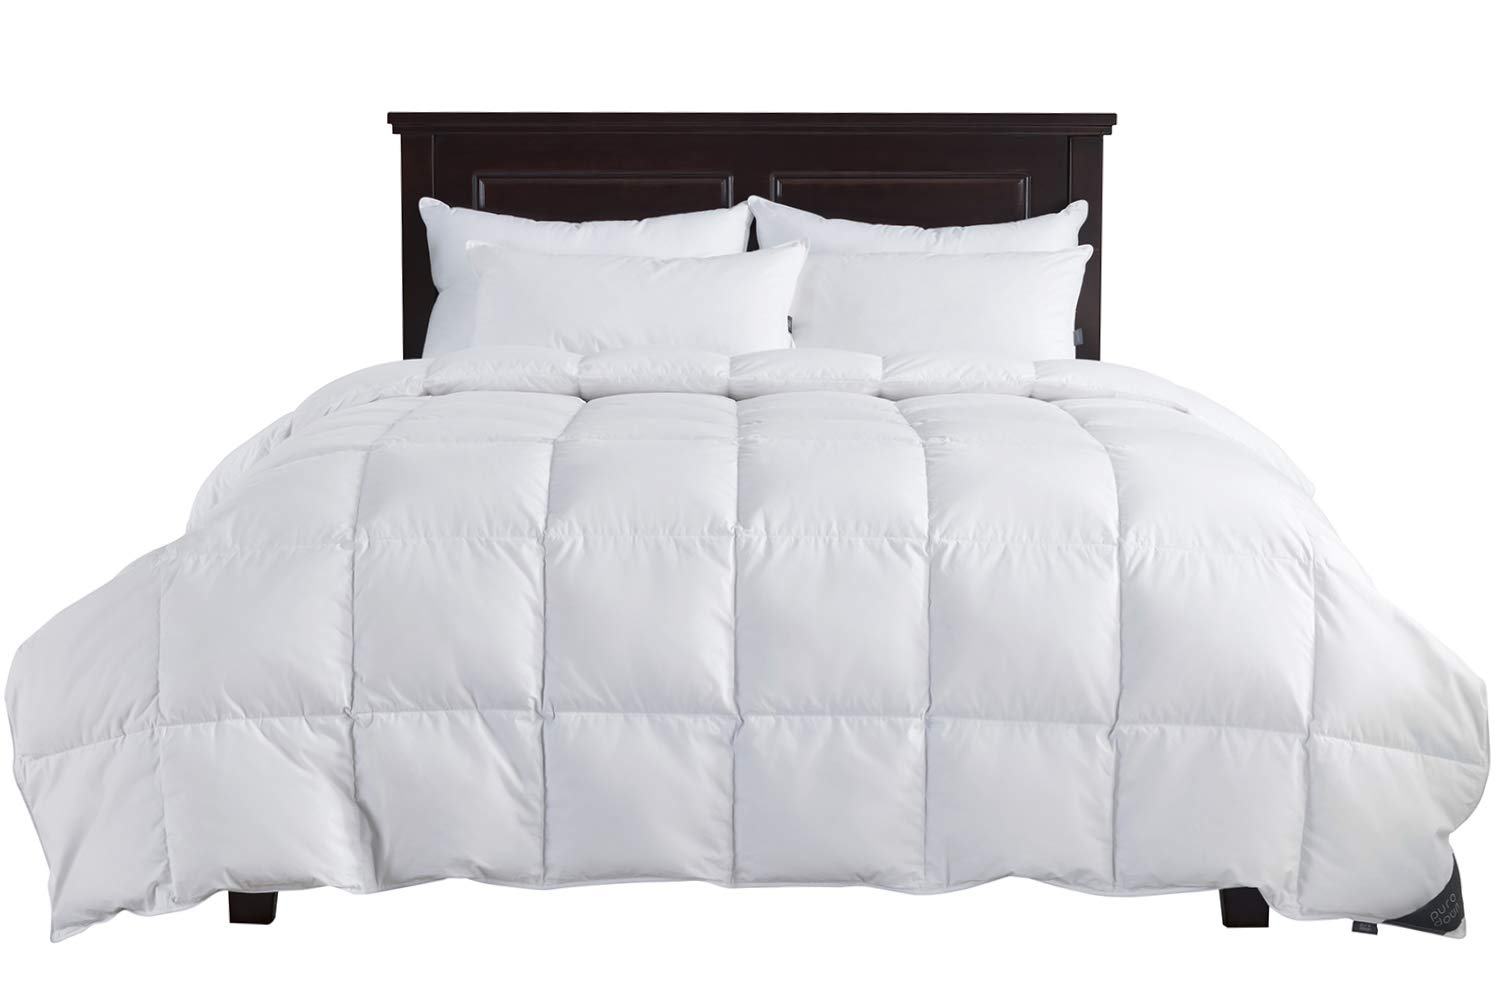 Puredown Lightweight Light Warmth Duvet Insert Down Comforter Twin